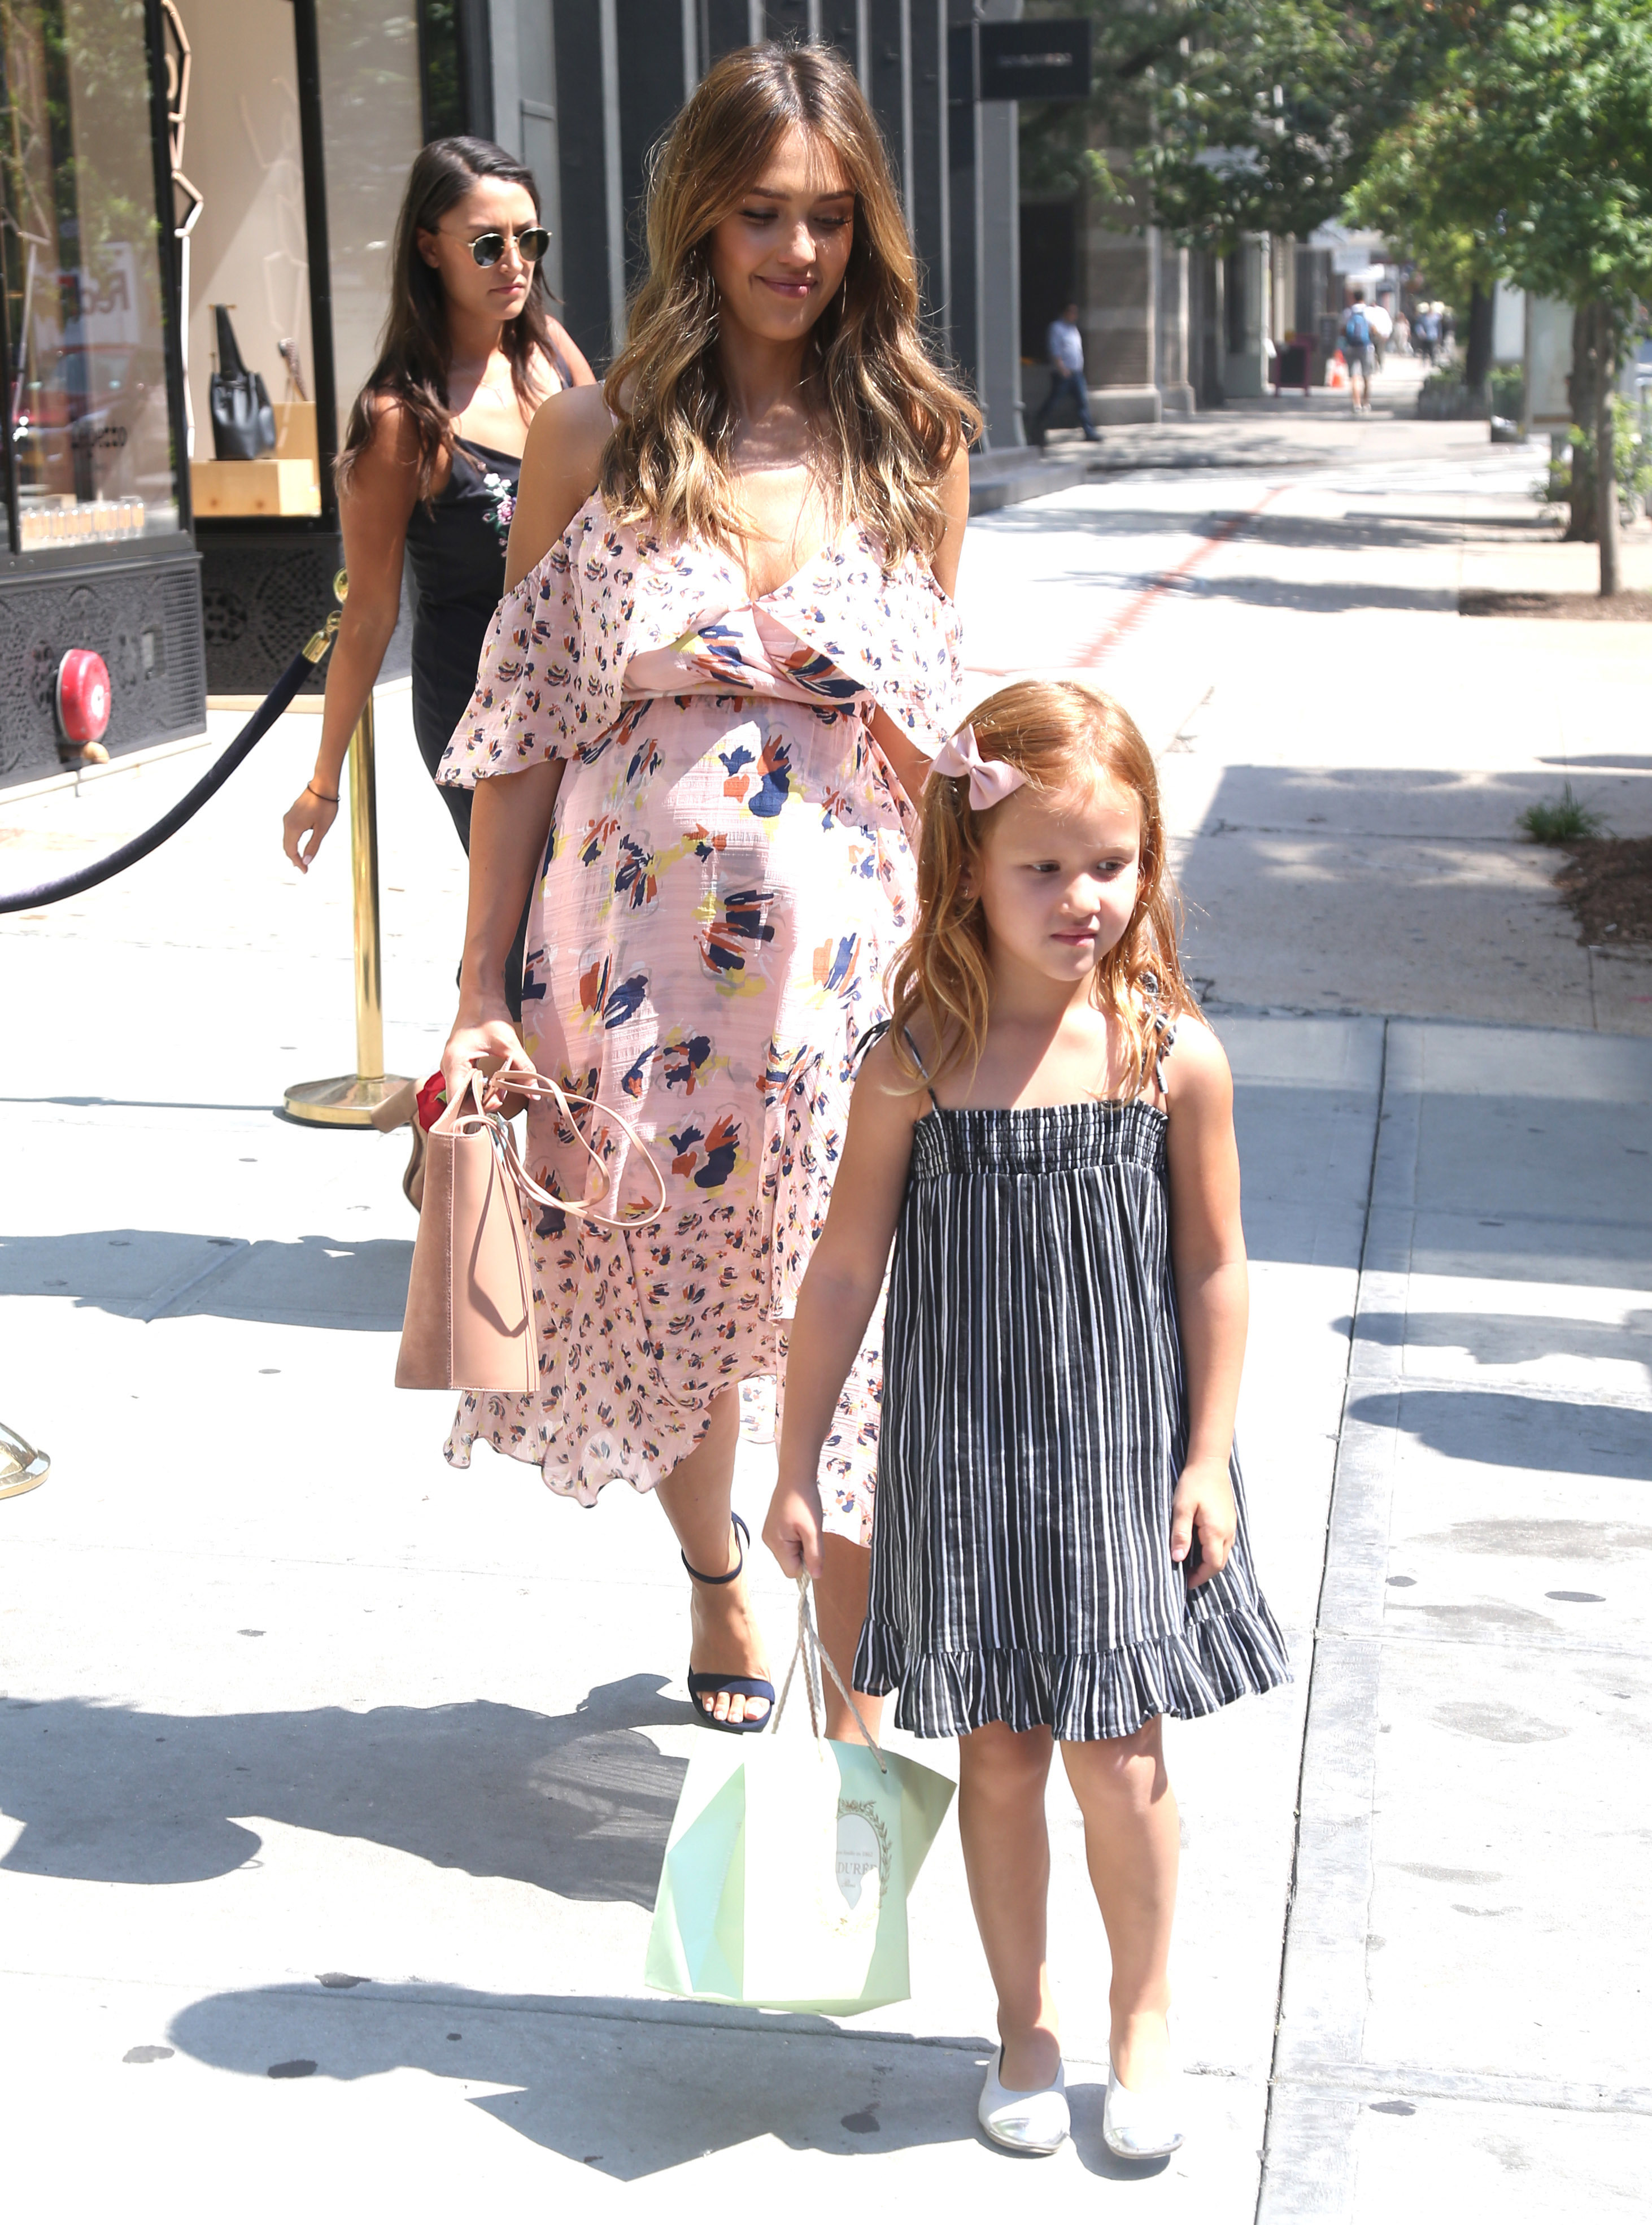 Jessica Alba and daughter Haven Warren were spotted out and about in New York City on Aug. 3, 2017.